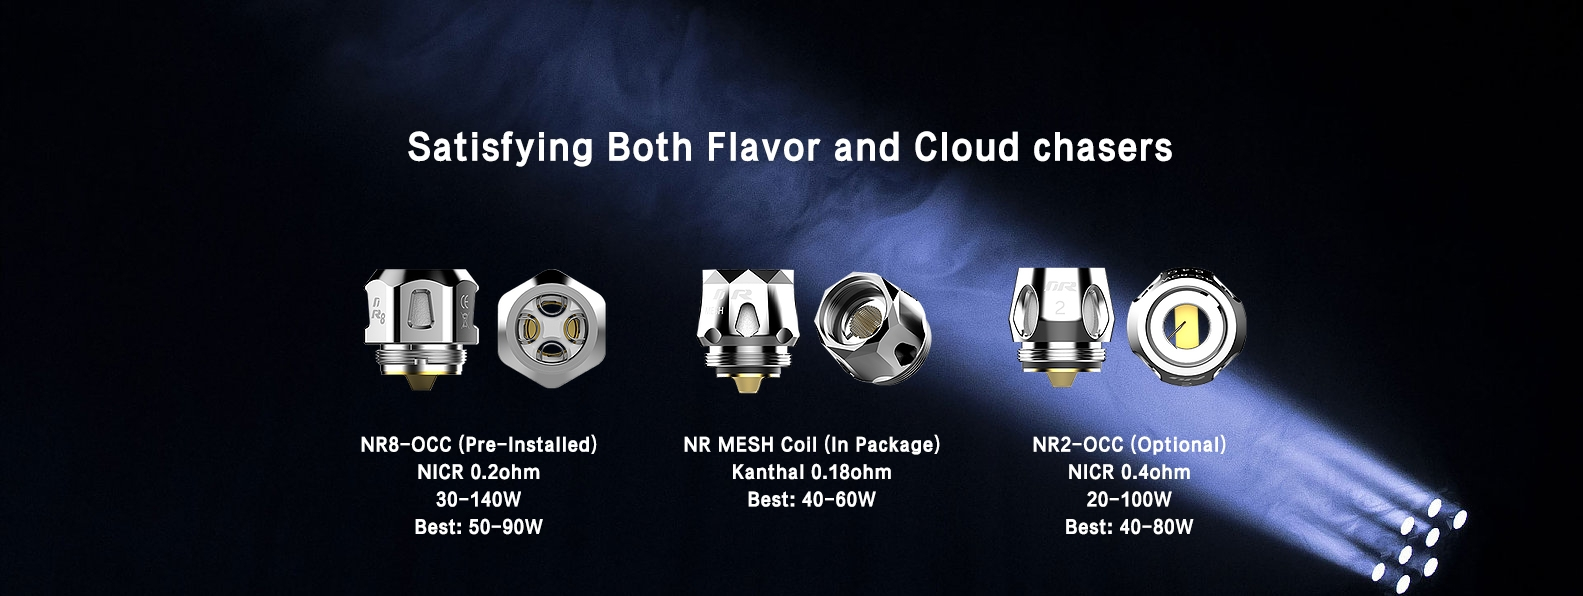 Features Satisfying Both Flavor and Cloud chasers